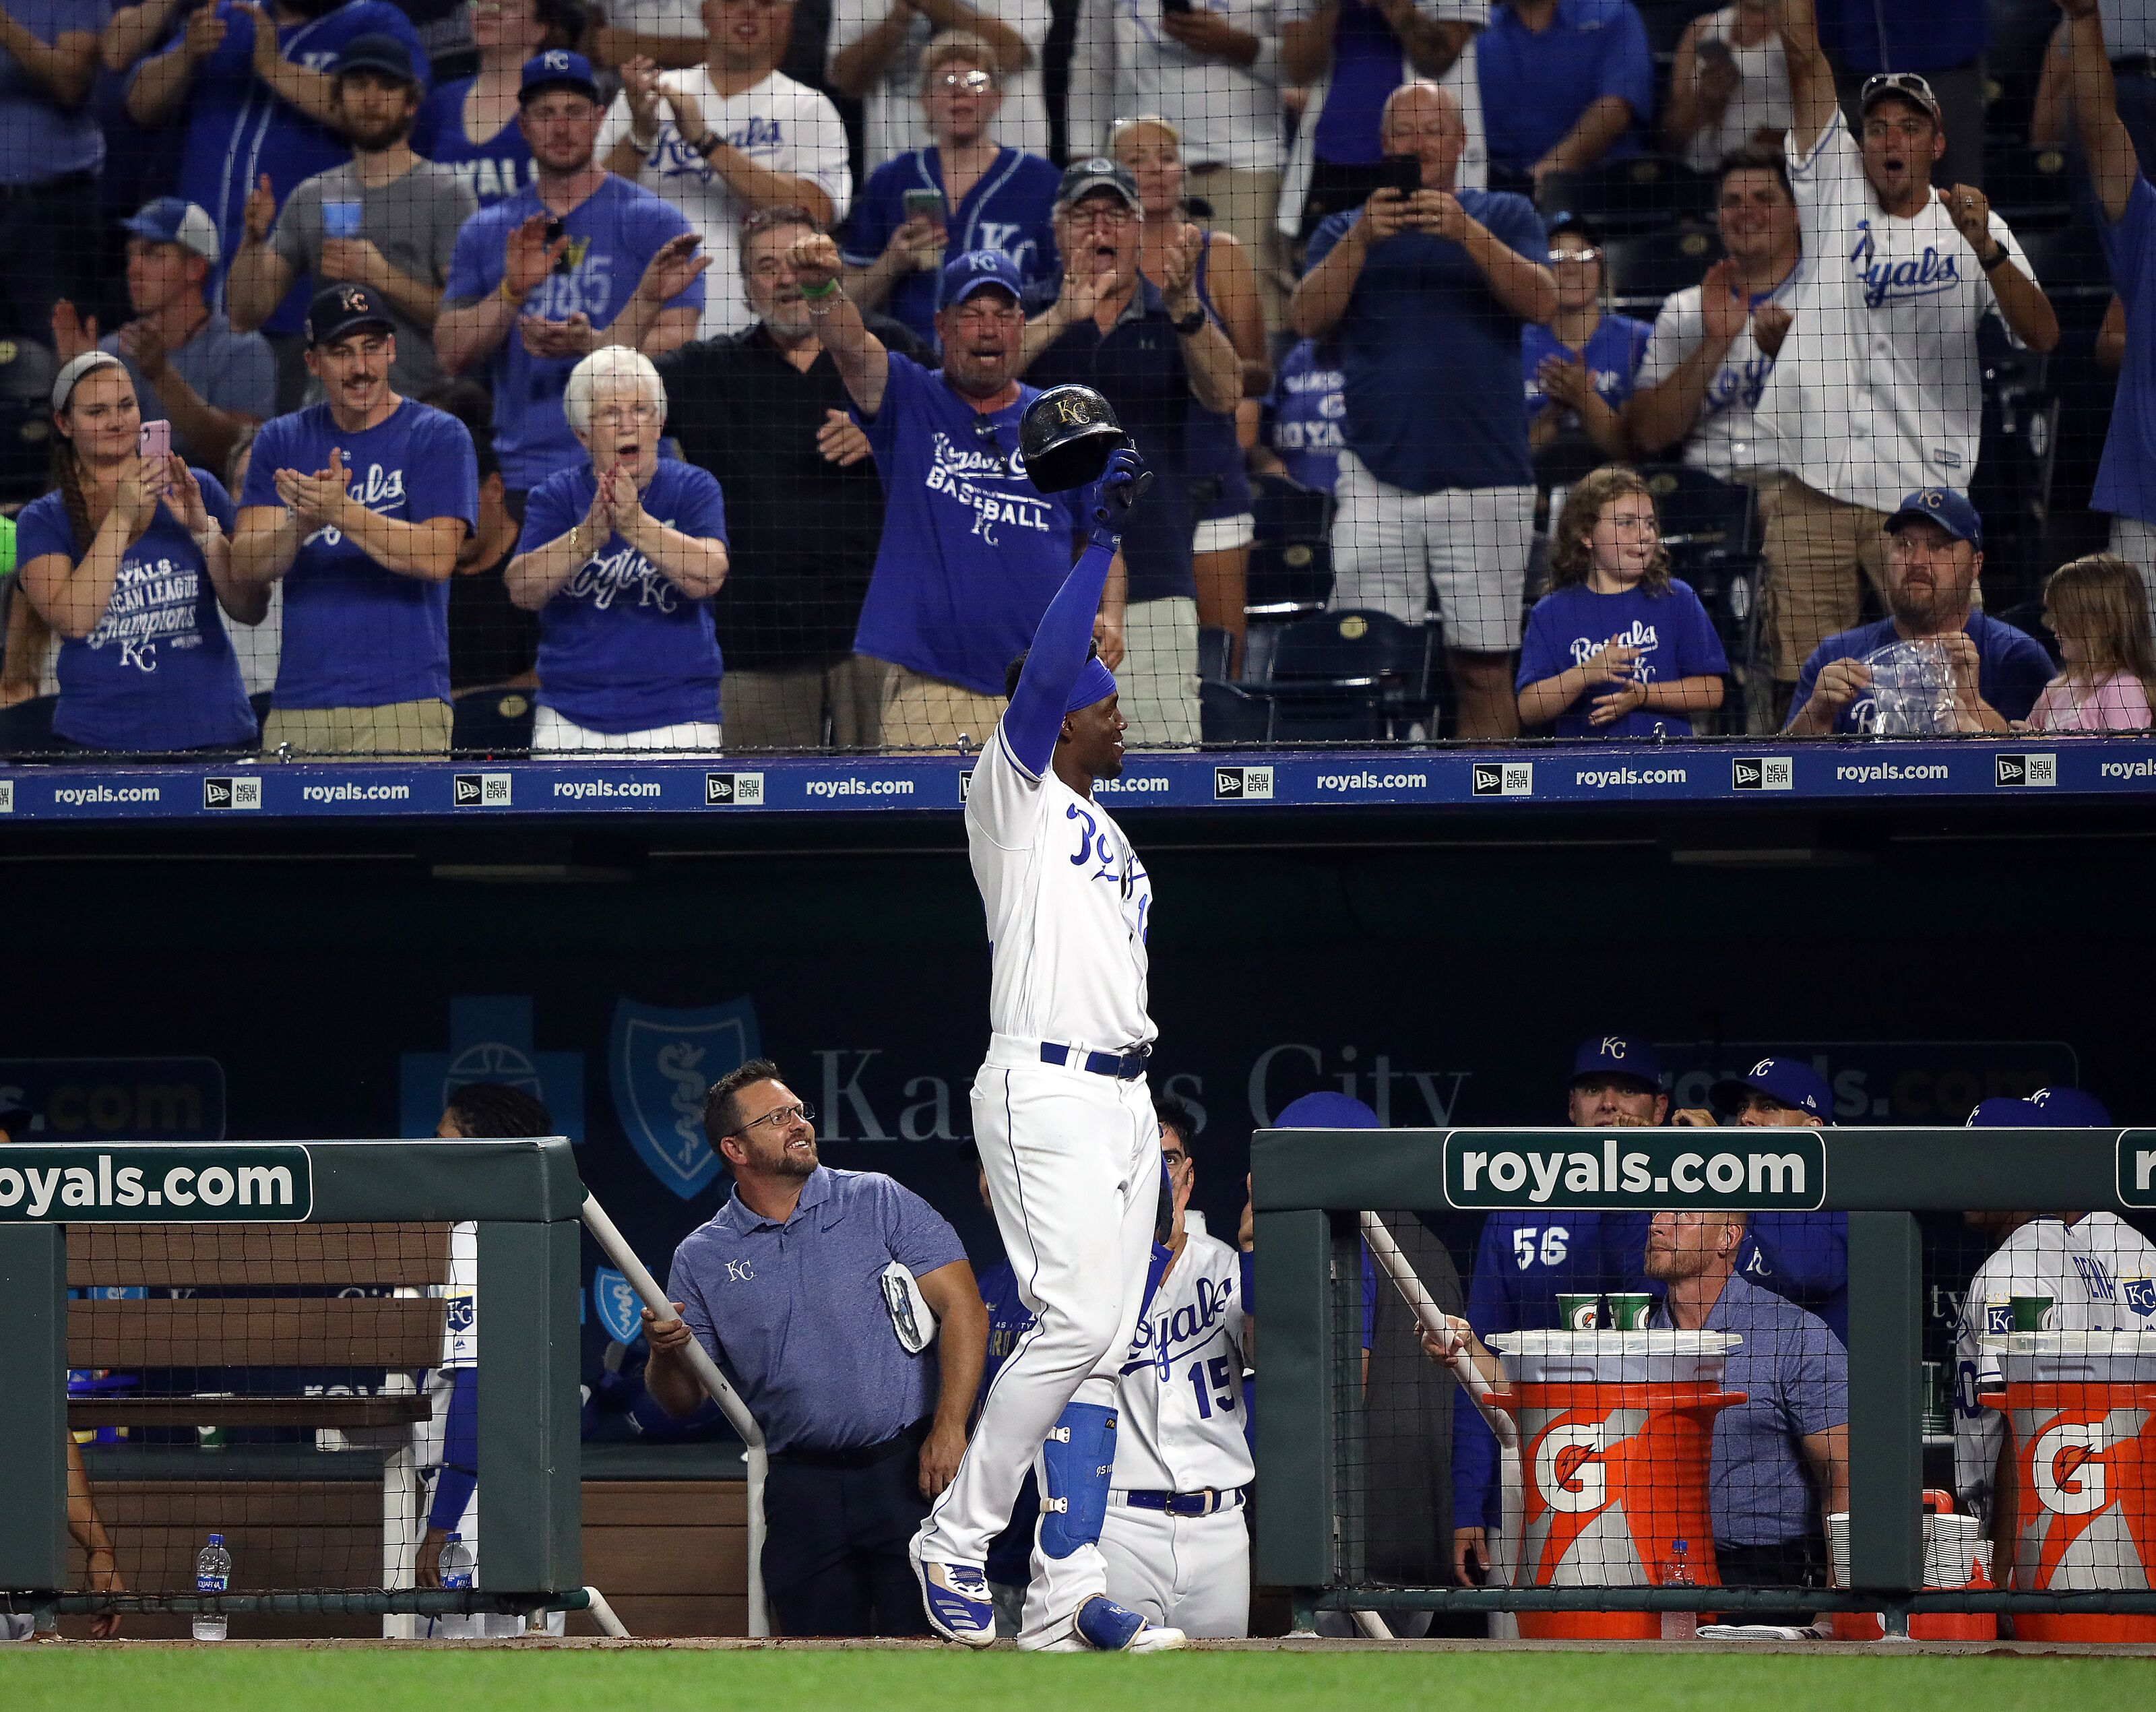 Kansas City Royals: Team home run record in jeopardy?